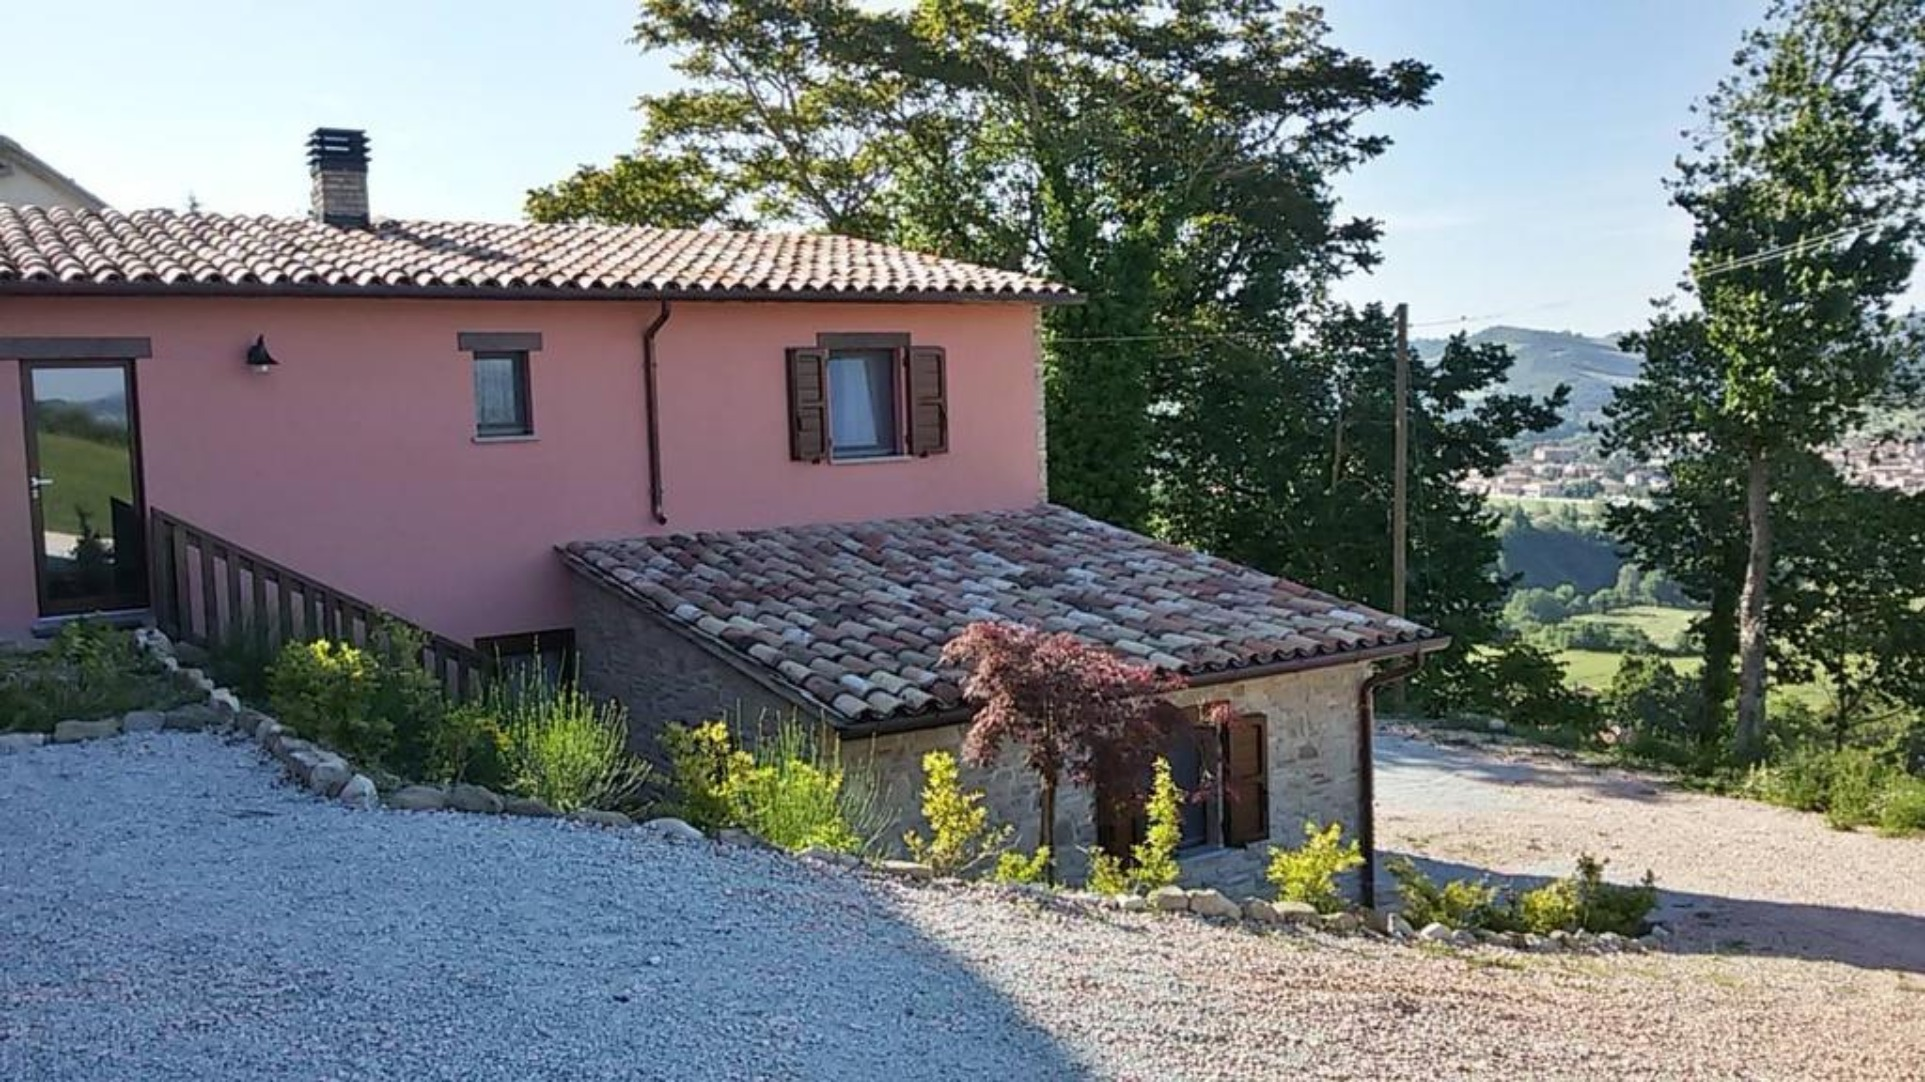 A house with trees in the background at B&B da Vi.Vì.